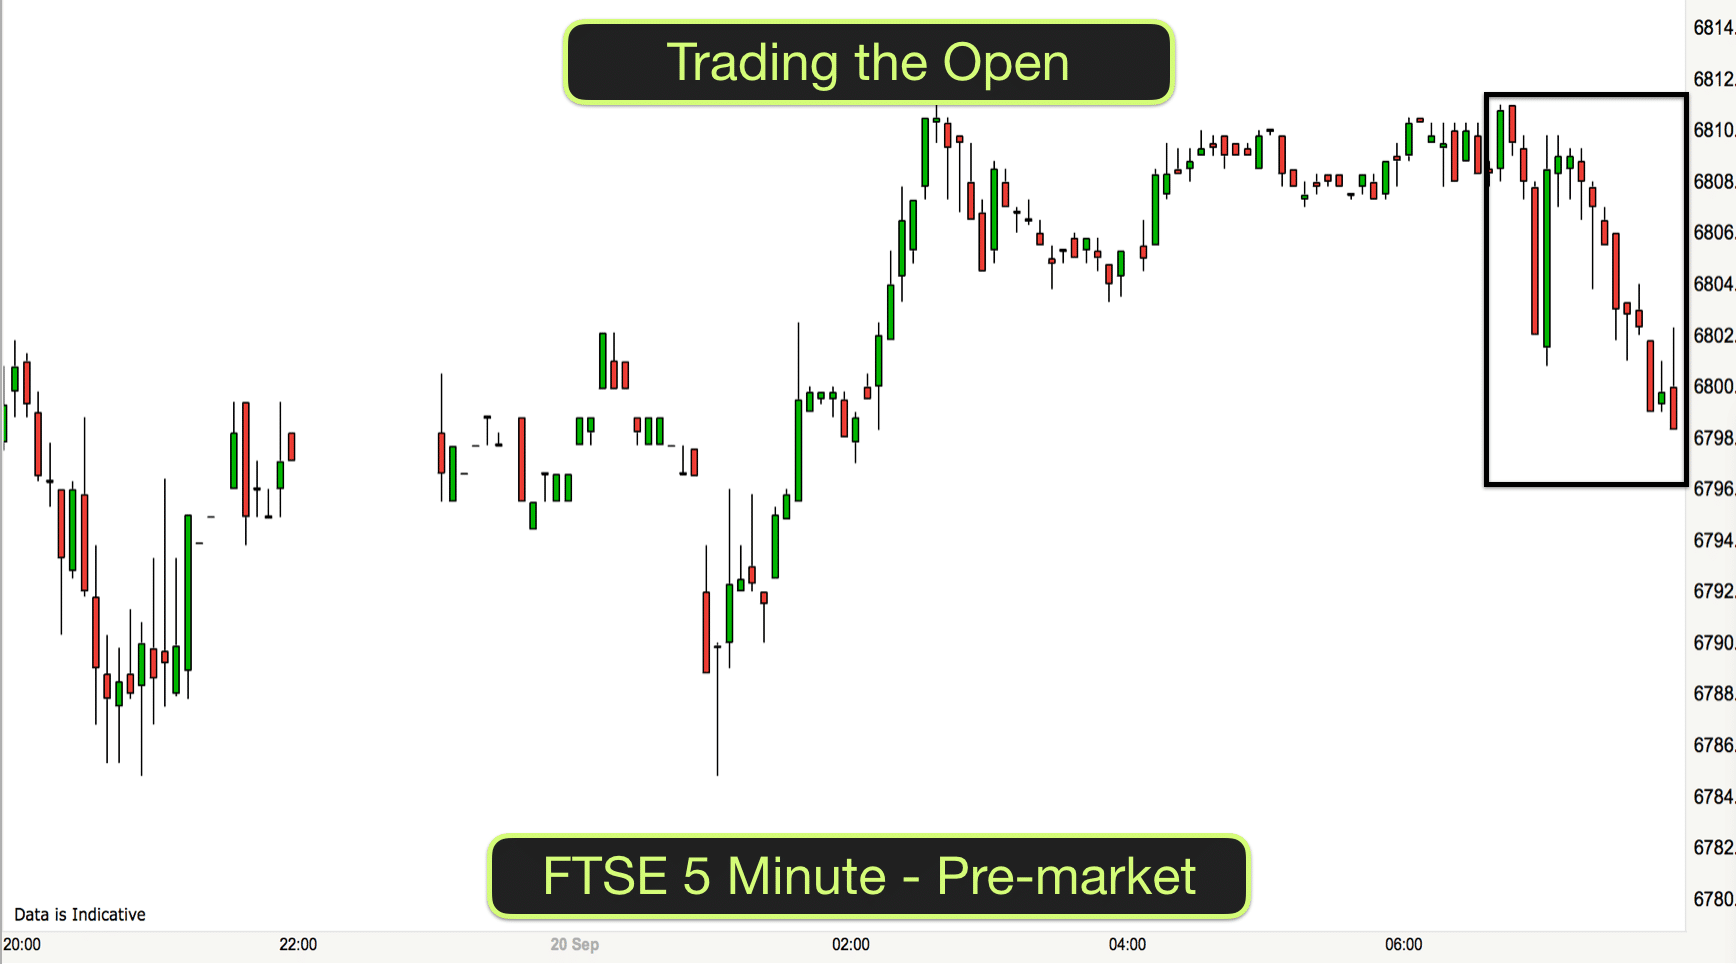 Trading the Open FTSE 20th Sept 2016